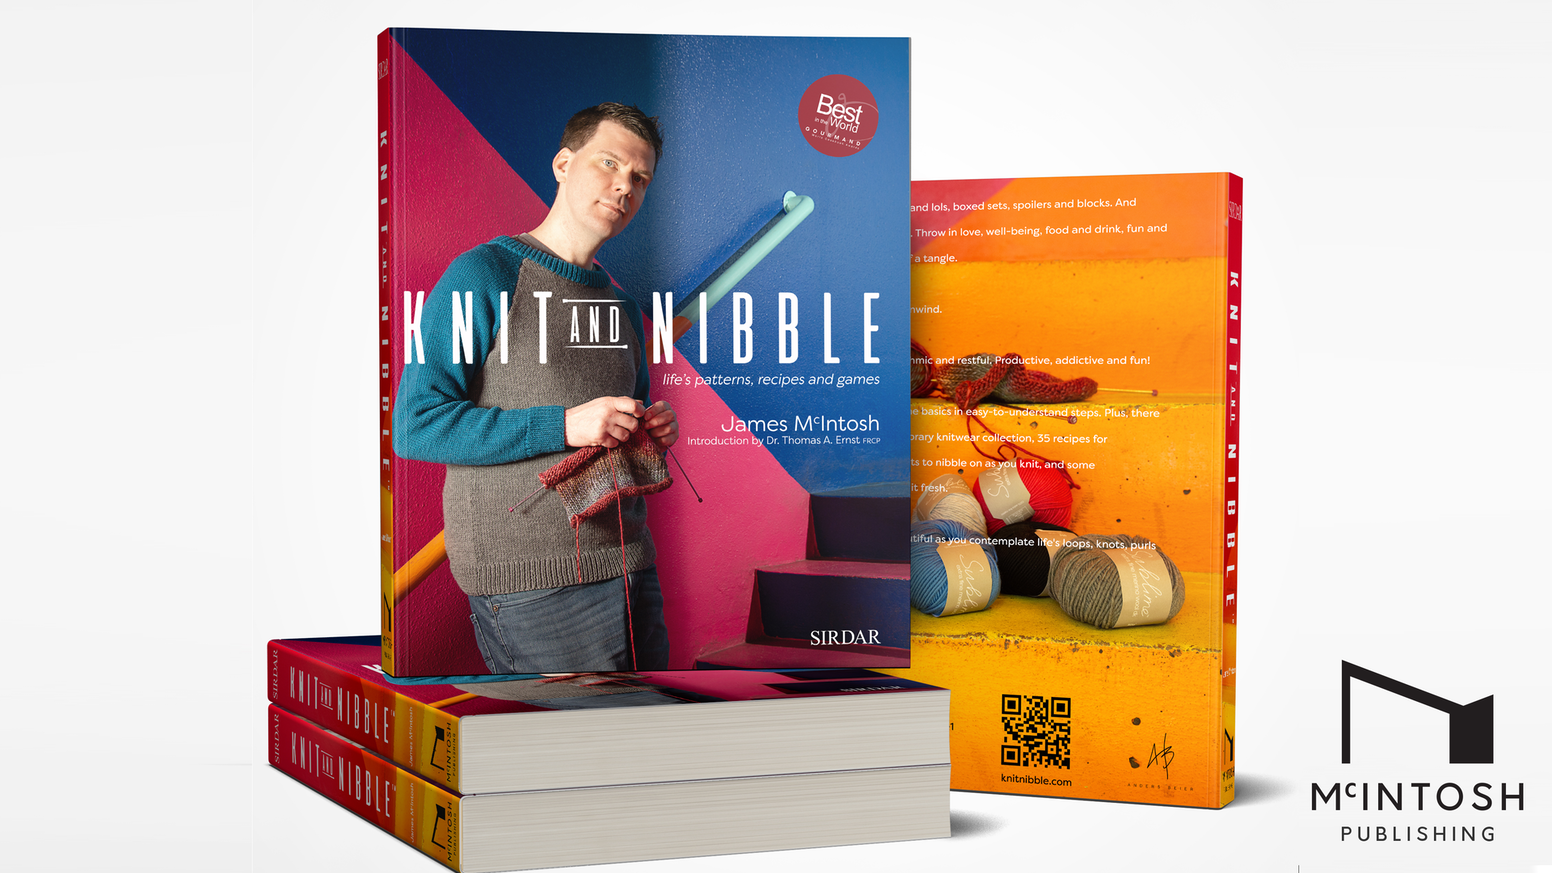 Knit and Nibble: life's patterns, recipes and games.